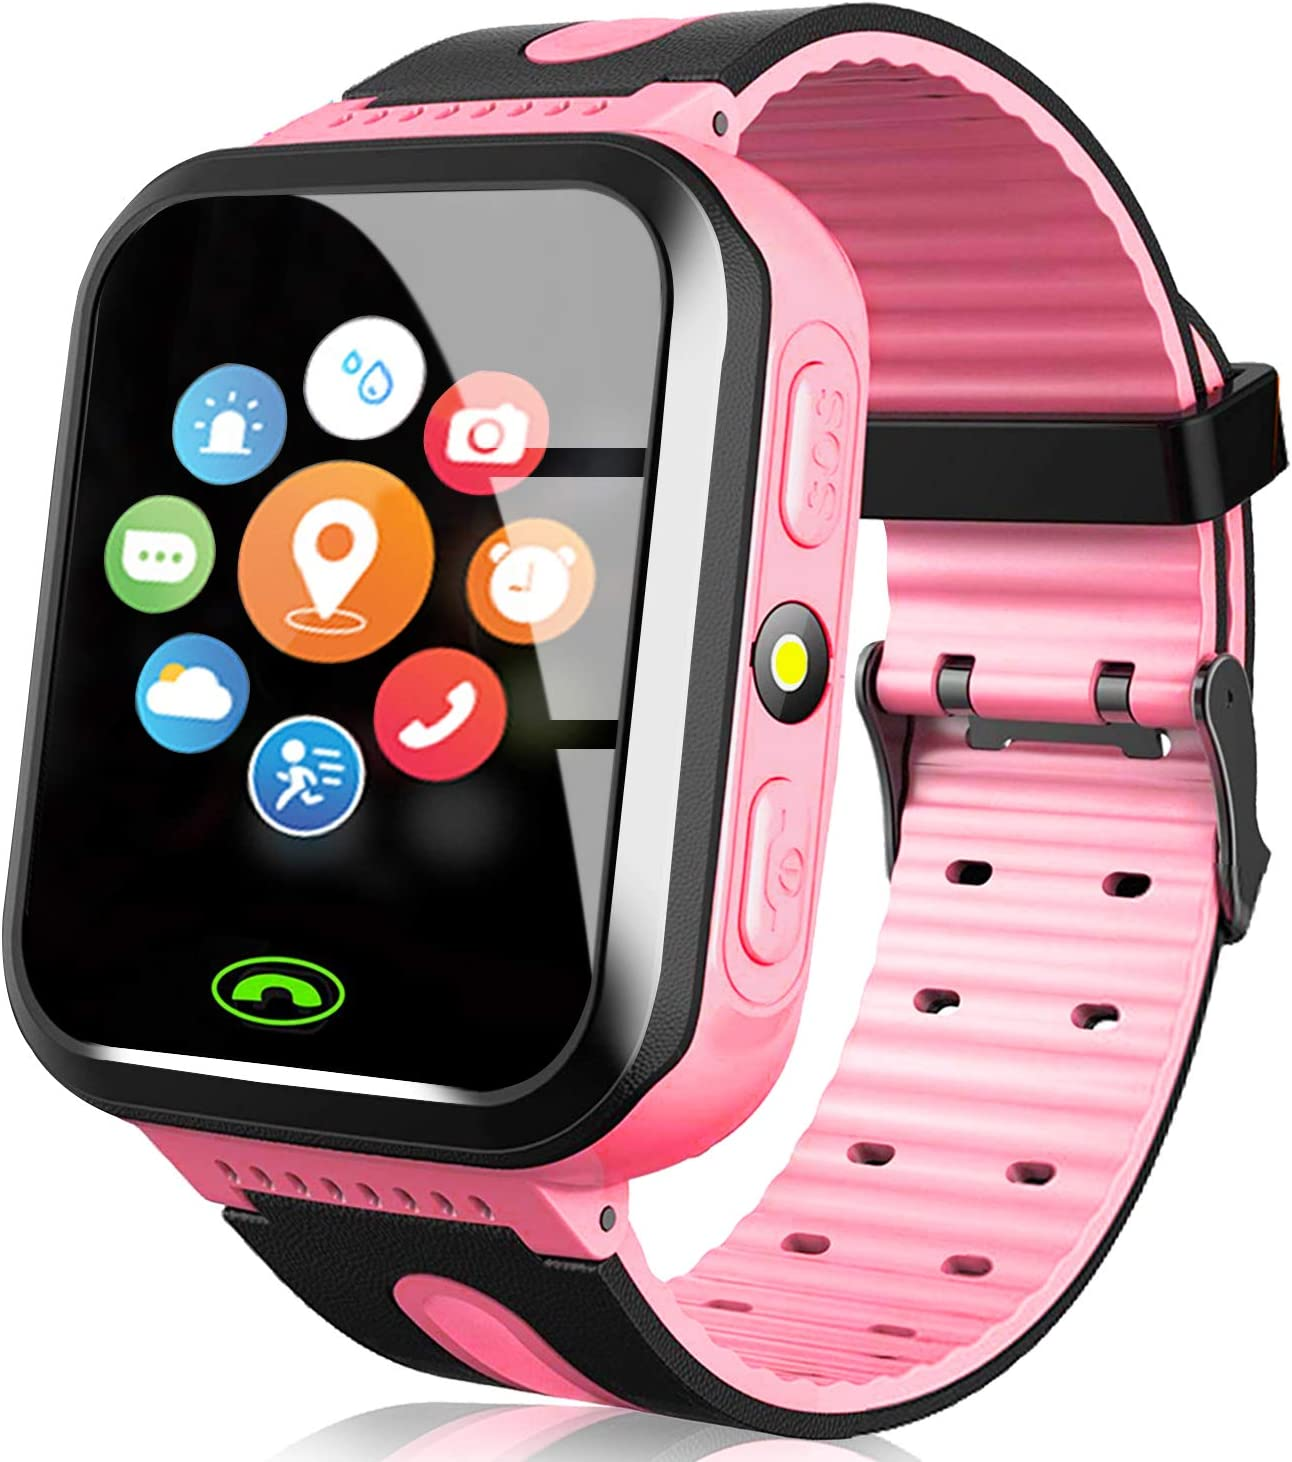 AMENON Kids Smart Watch GPS Tracker - Kids Phone Smartwatch for Boys Girls 3-12 Years Old with Call SOS Anti-Lost Games, Child Cellphone Wrist Watch ...